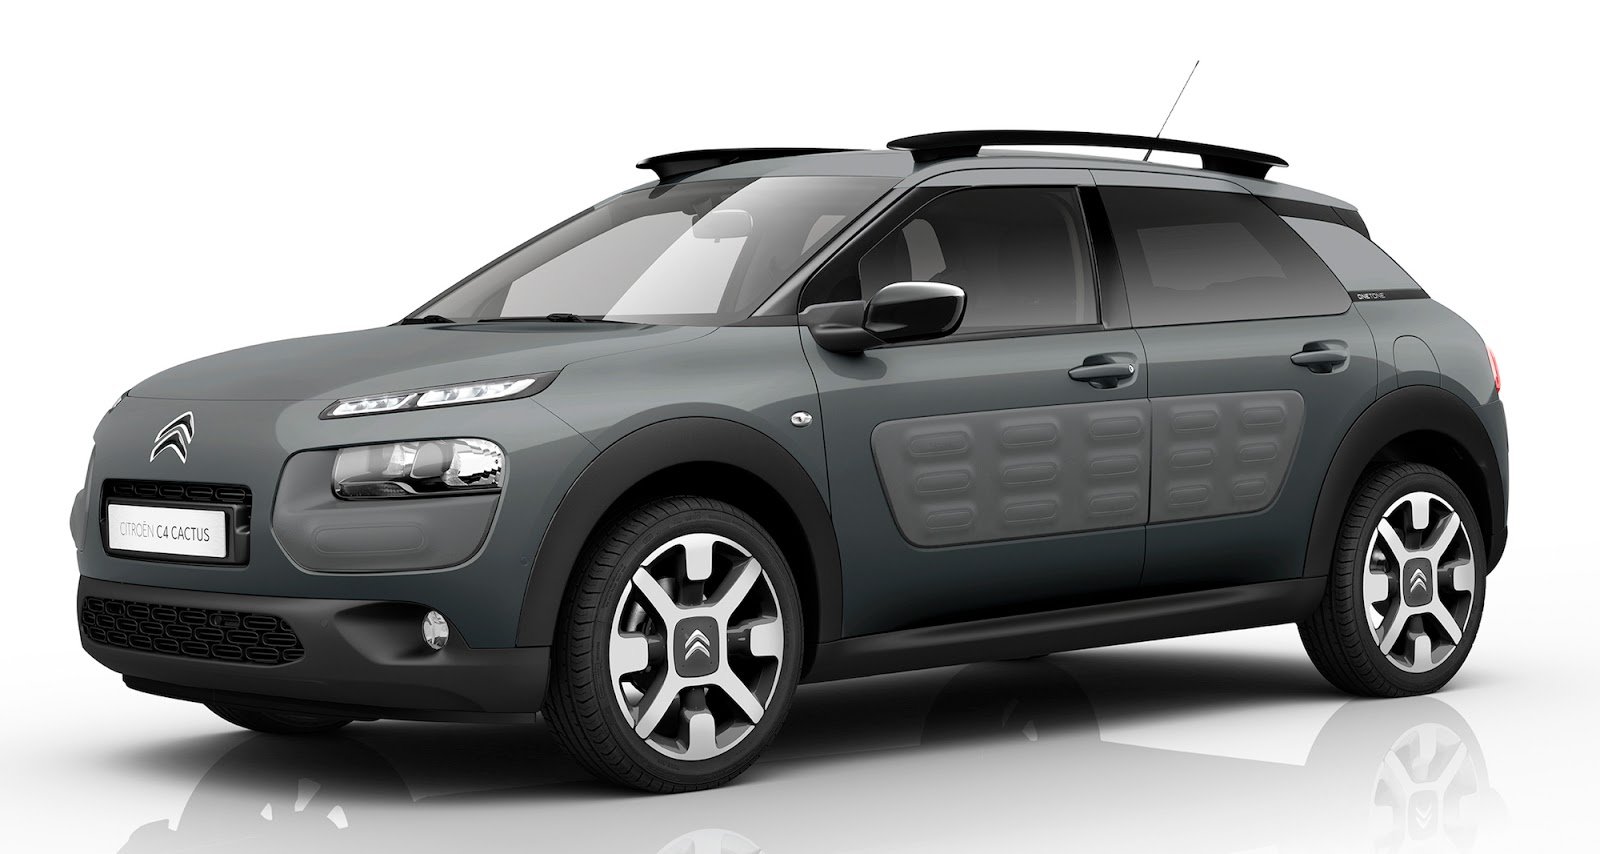 irish car travel magazine new autobox for c4 cactus. Black Bedroom Furniture Sets. Home Design Ideas